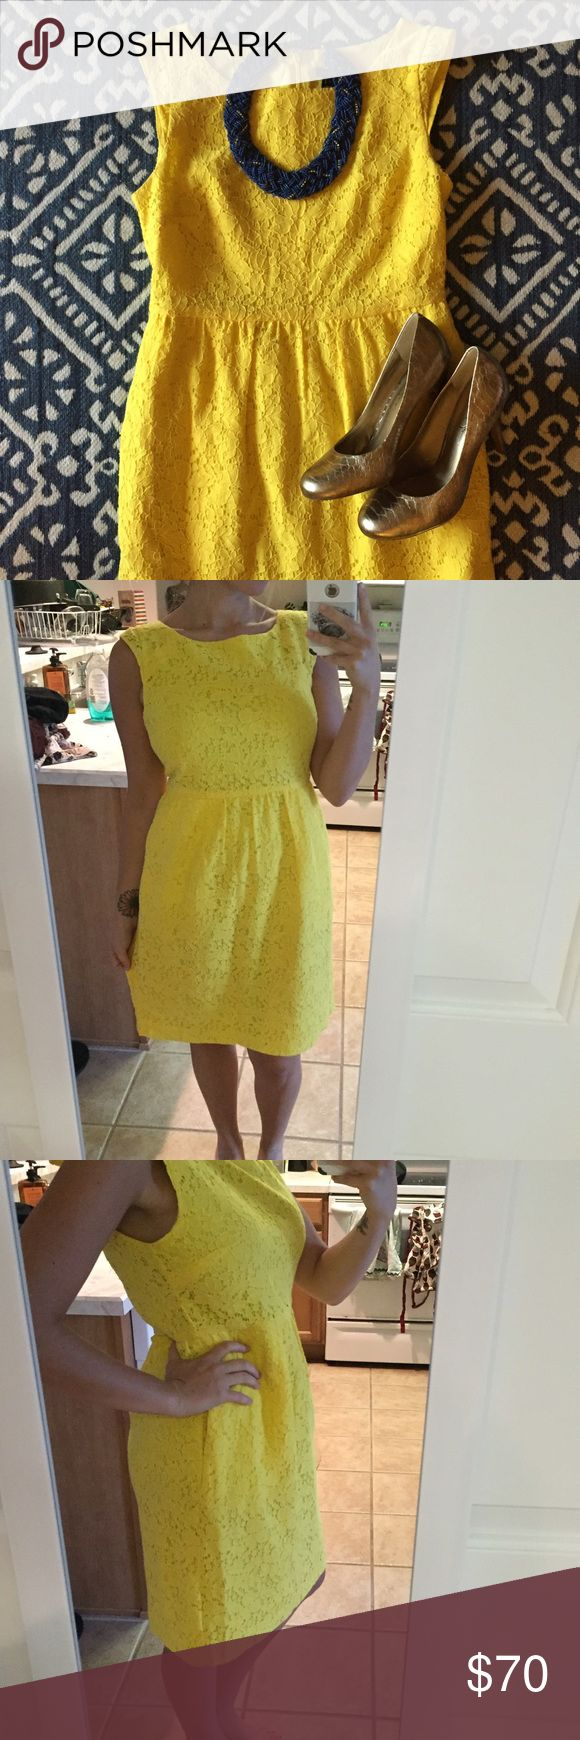 yellow dress jeelry room